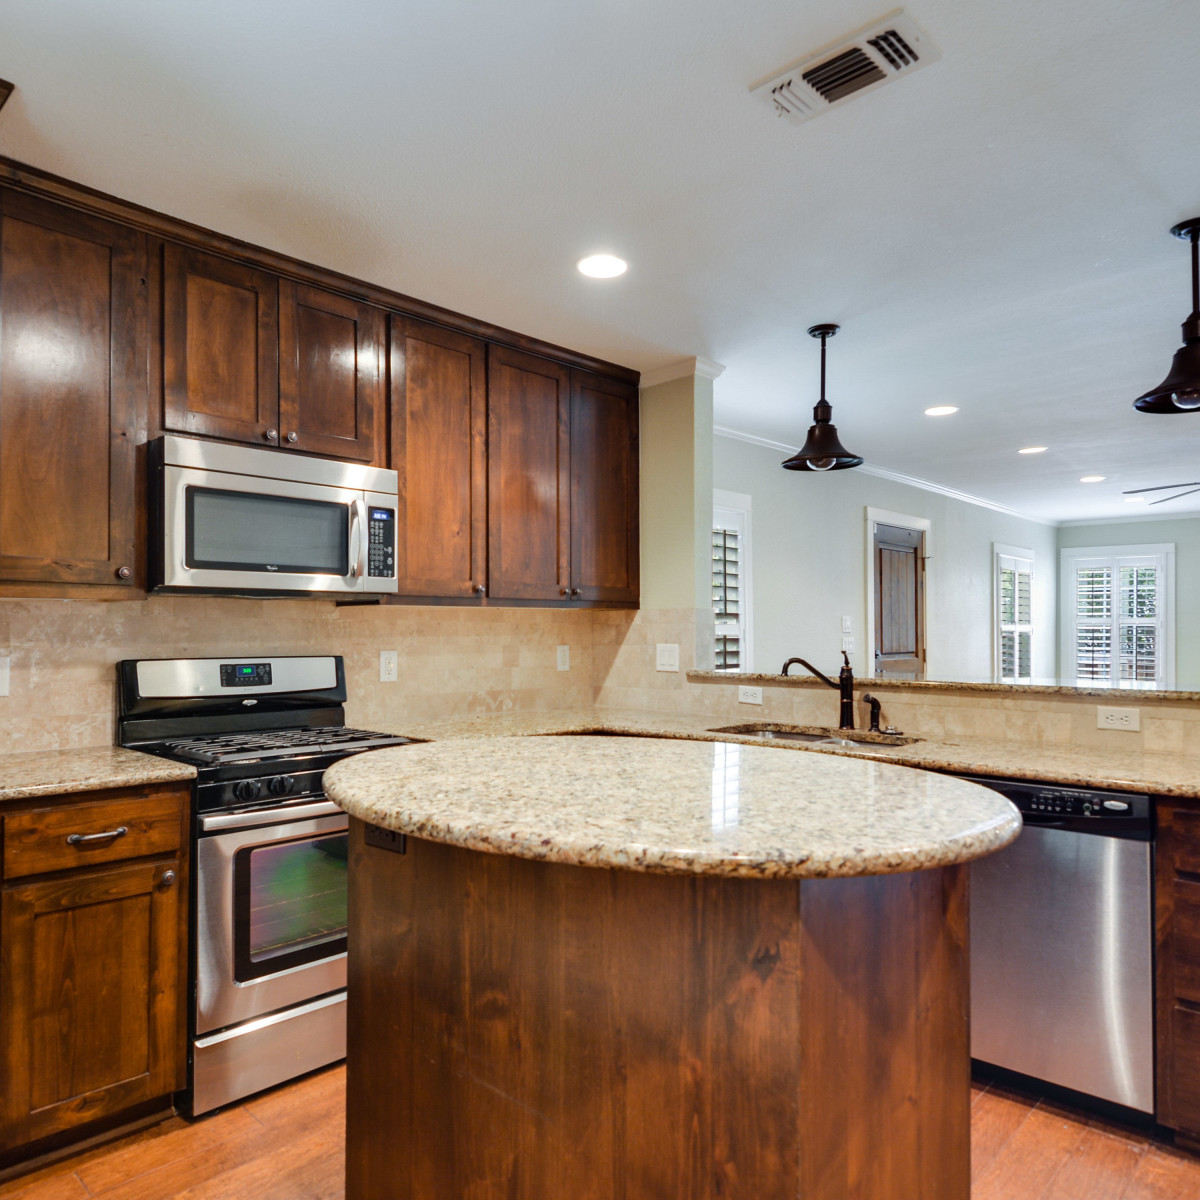 280 E Fair Oaks San Antonio house for sale kitchen